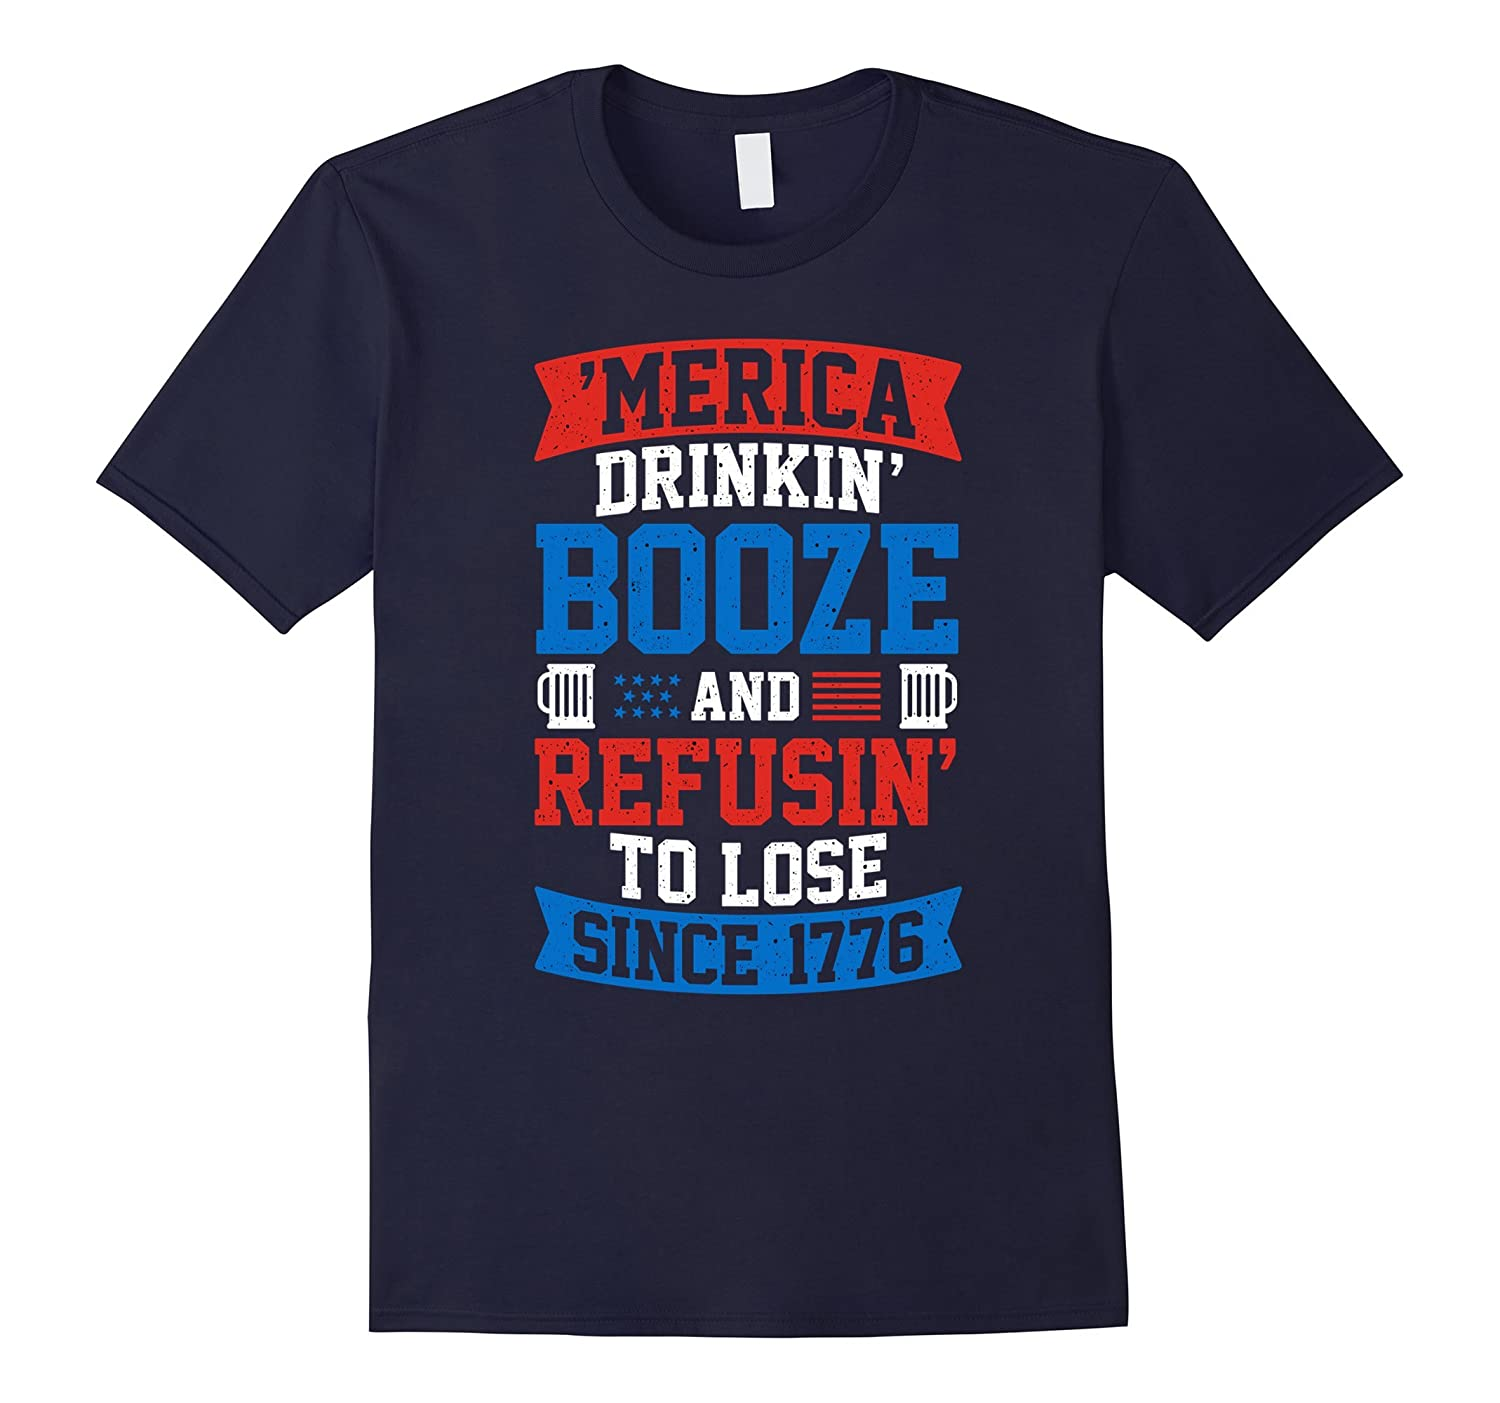 'Merica Drinkin' Booze And Refusin' To Lose T-Shirt-4LVS